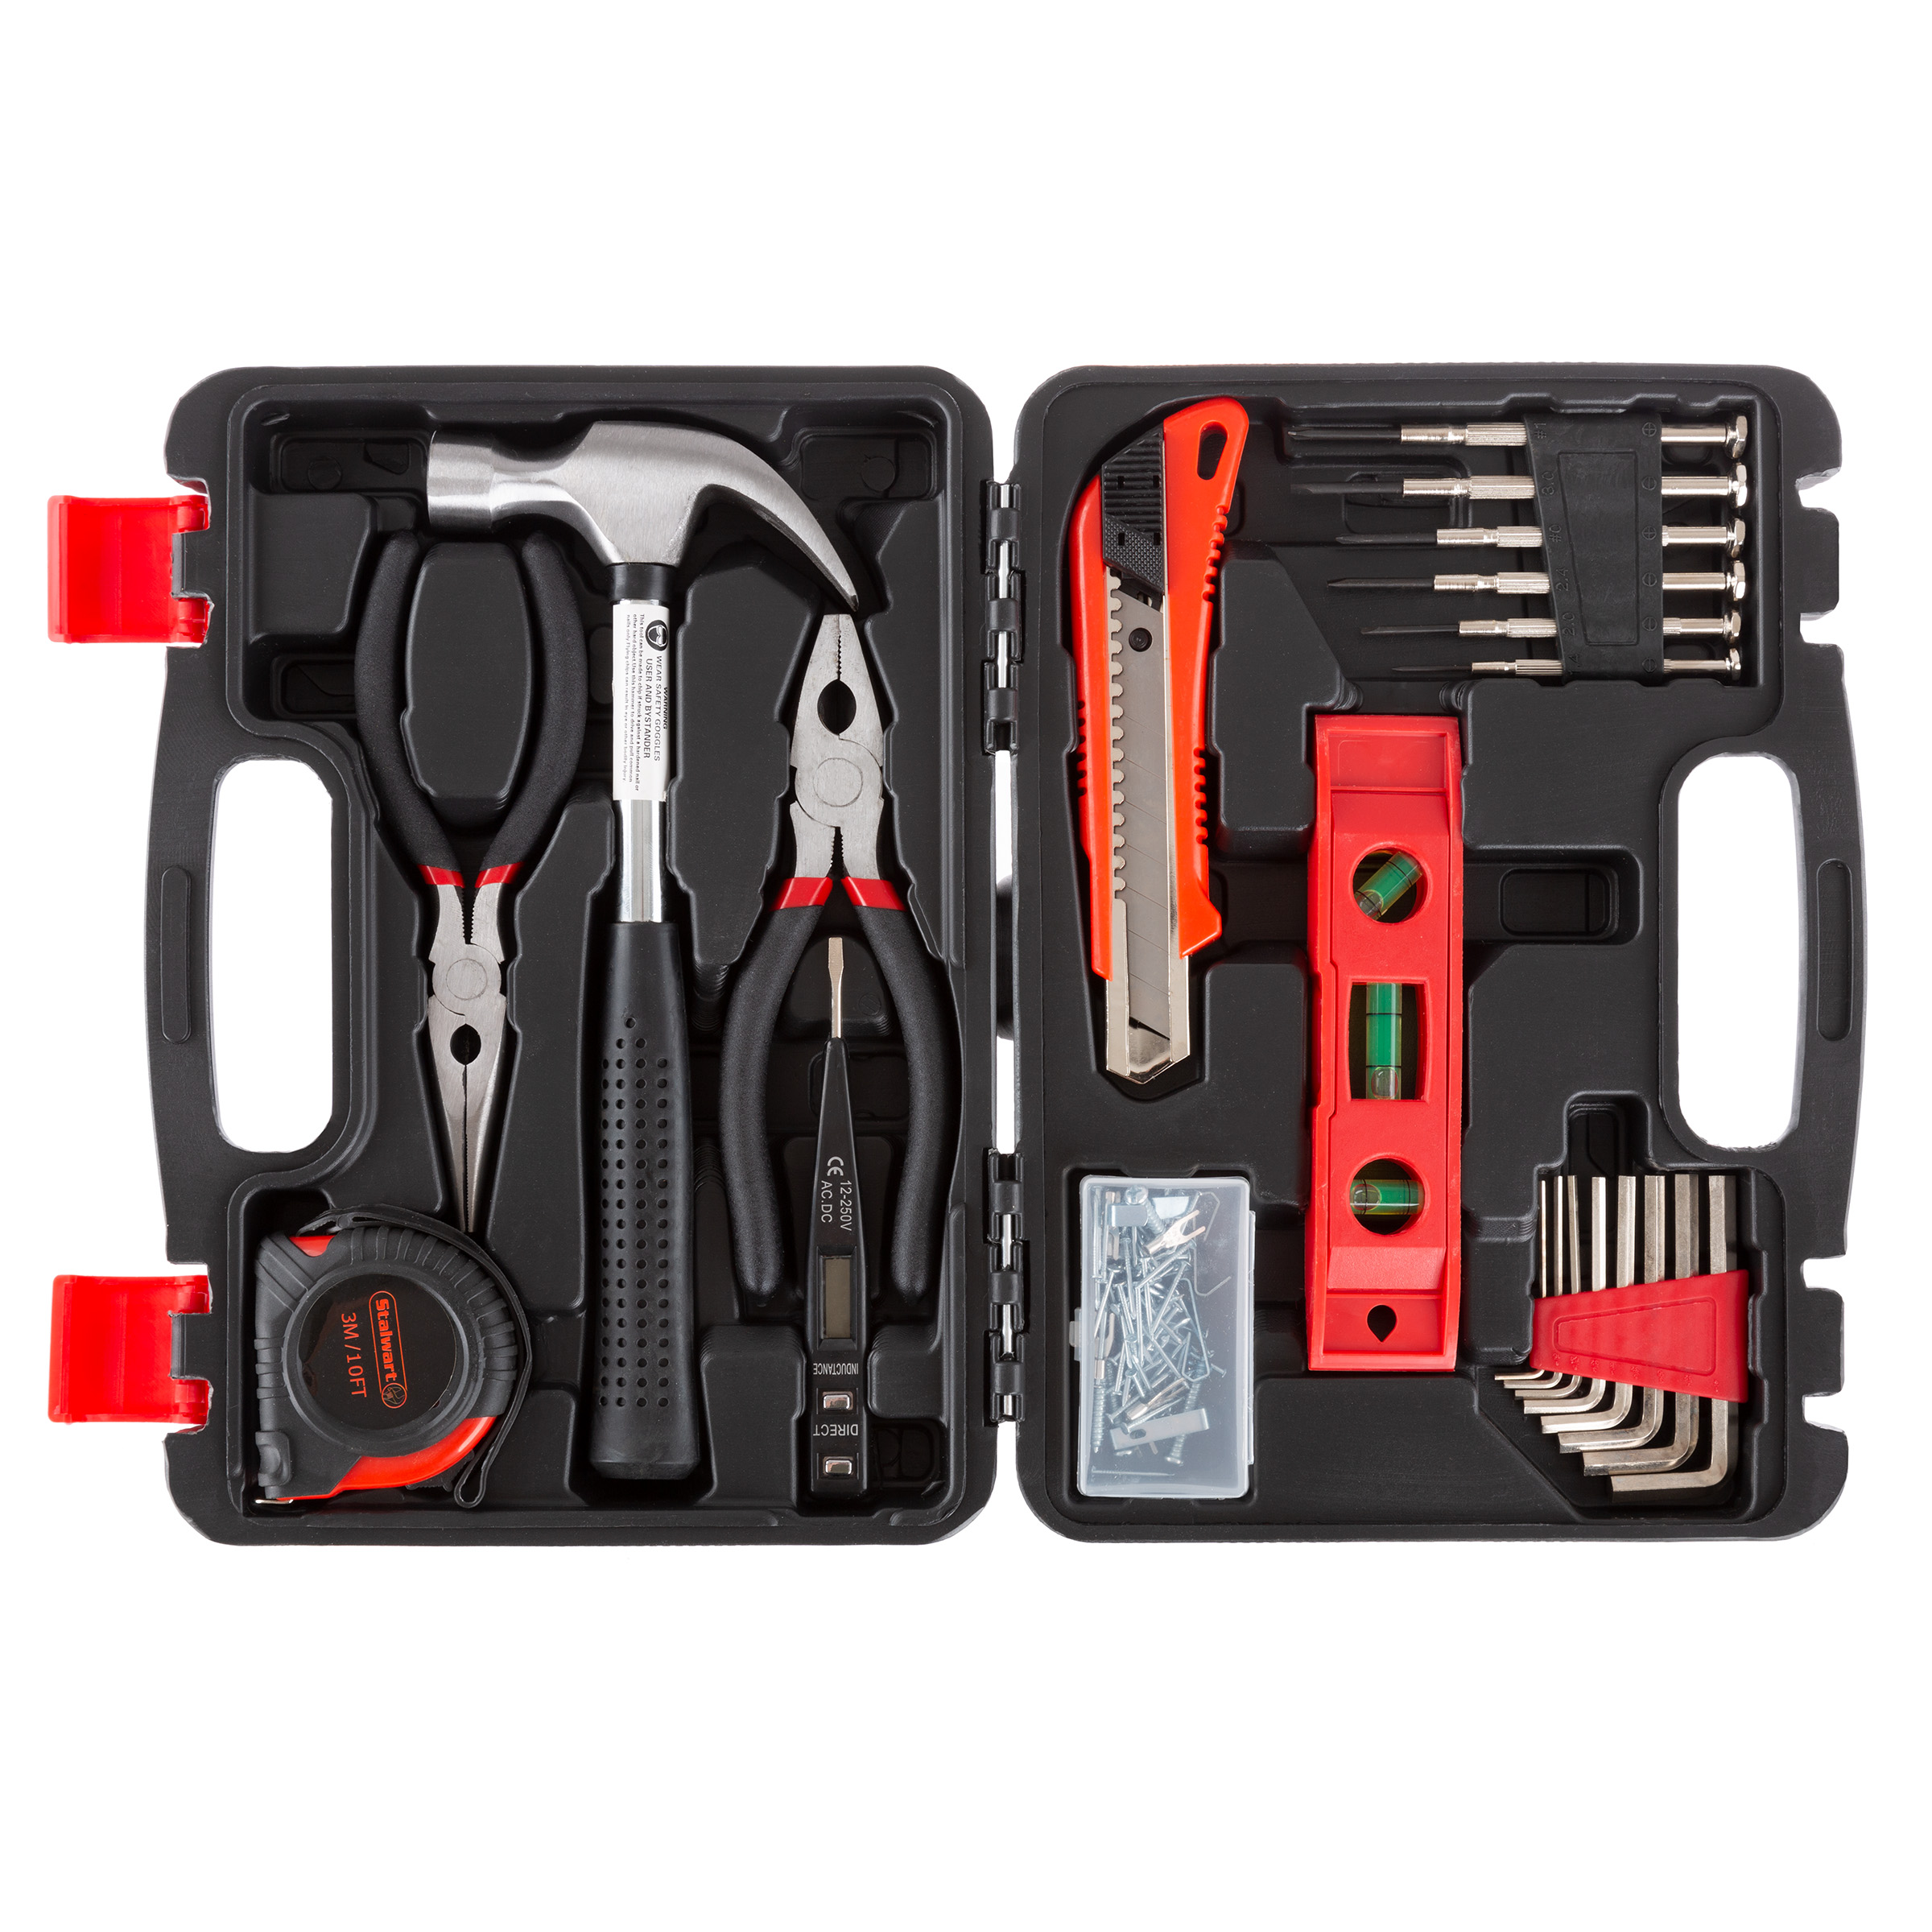 Tool Kit - 102 Heat-Treated Pieces with Carrying Case - Essential Steel Hand Tool and Basic Repair Set for Apartments, Dorm, Homeowners by Stalwart